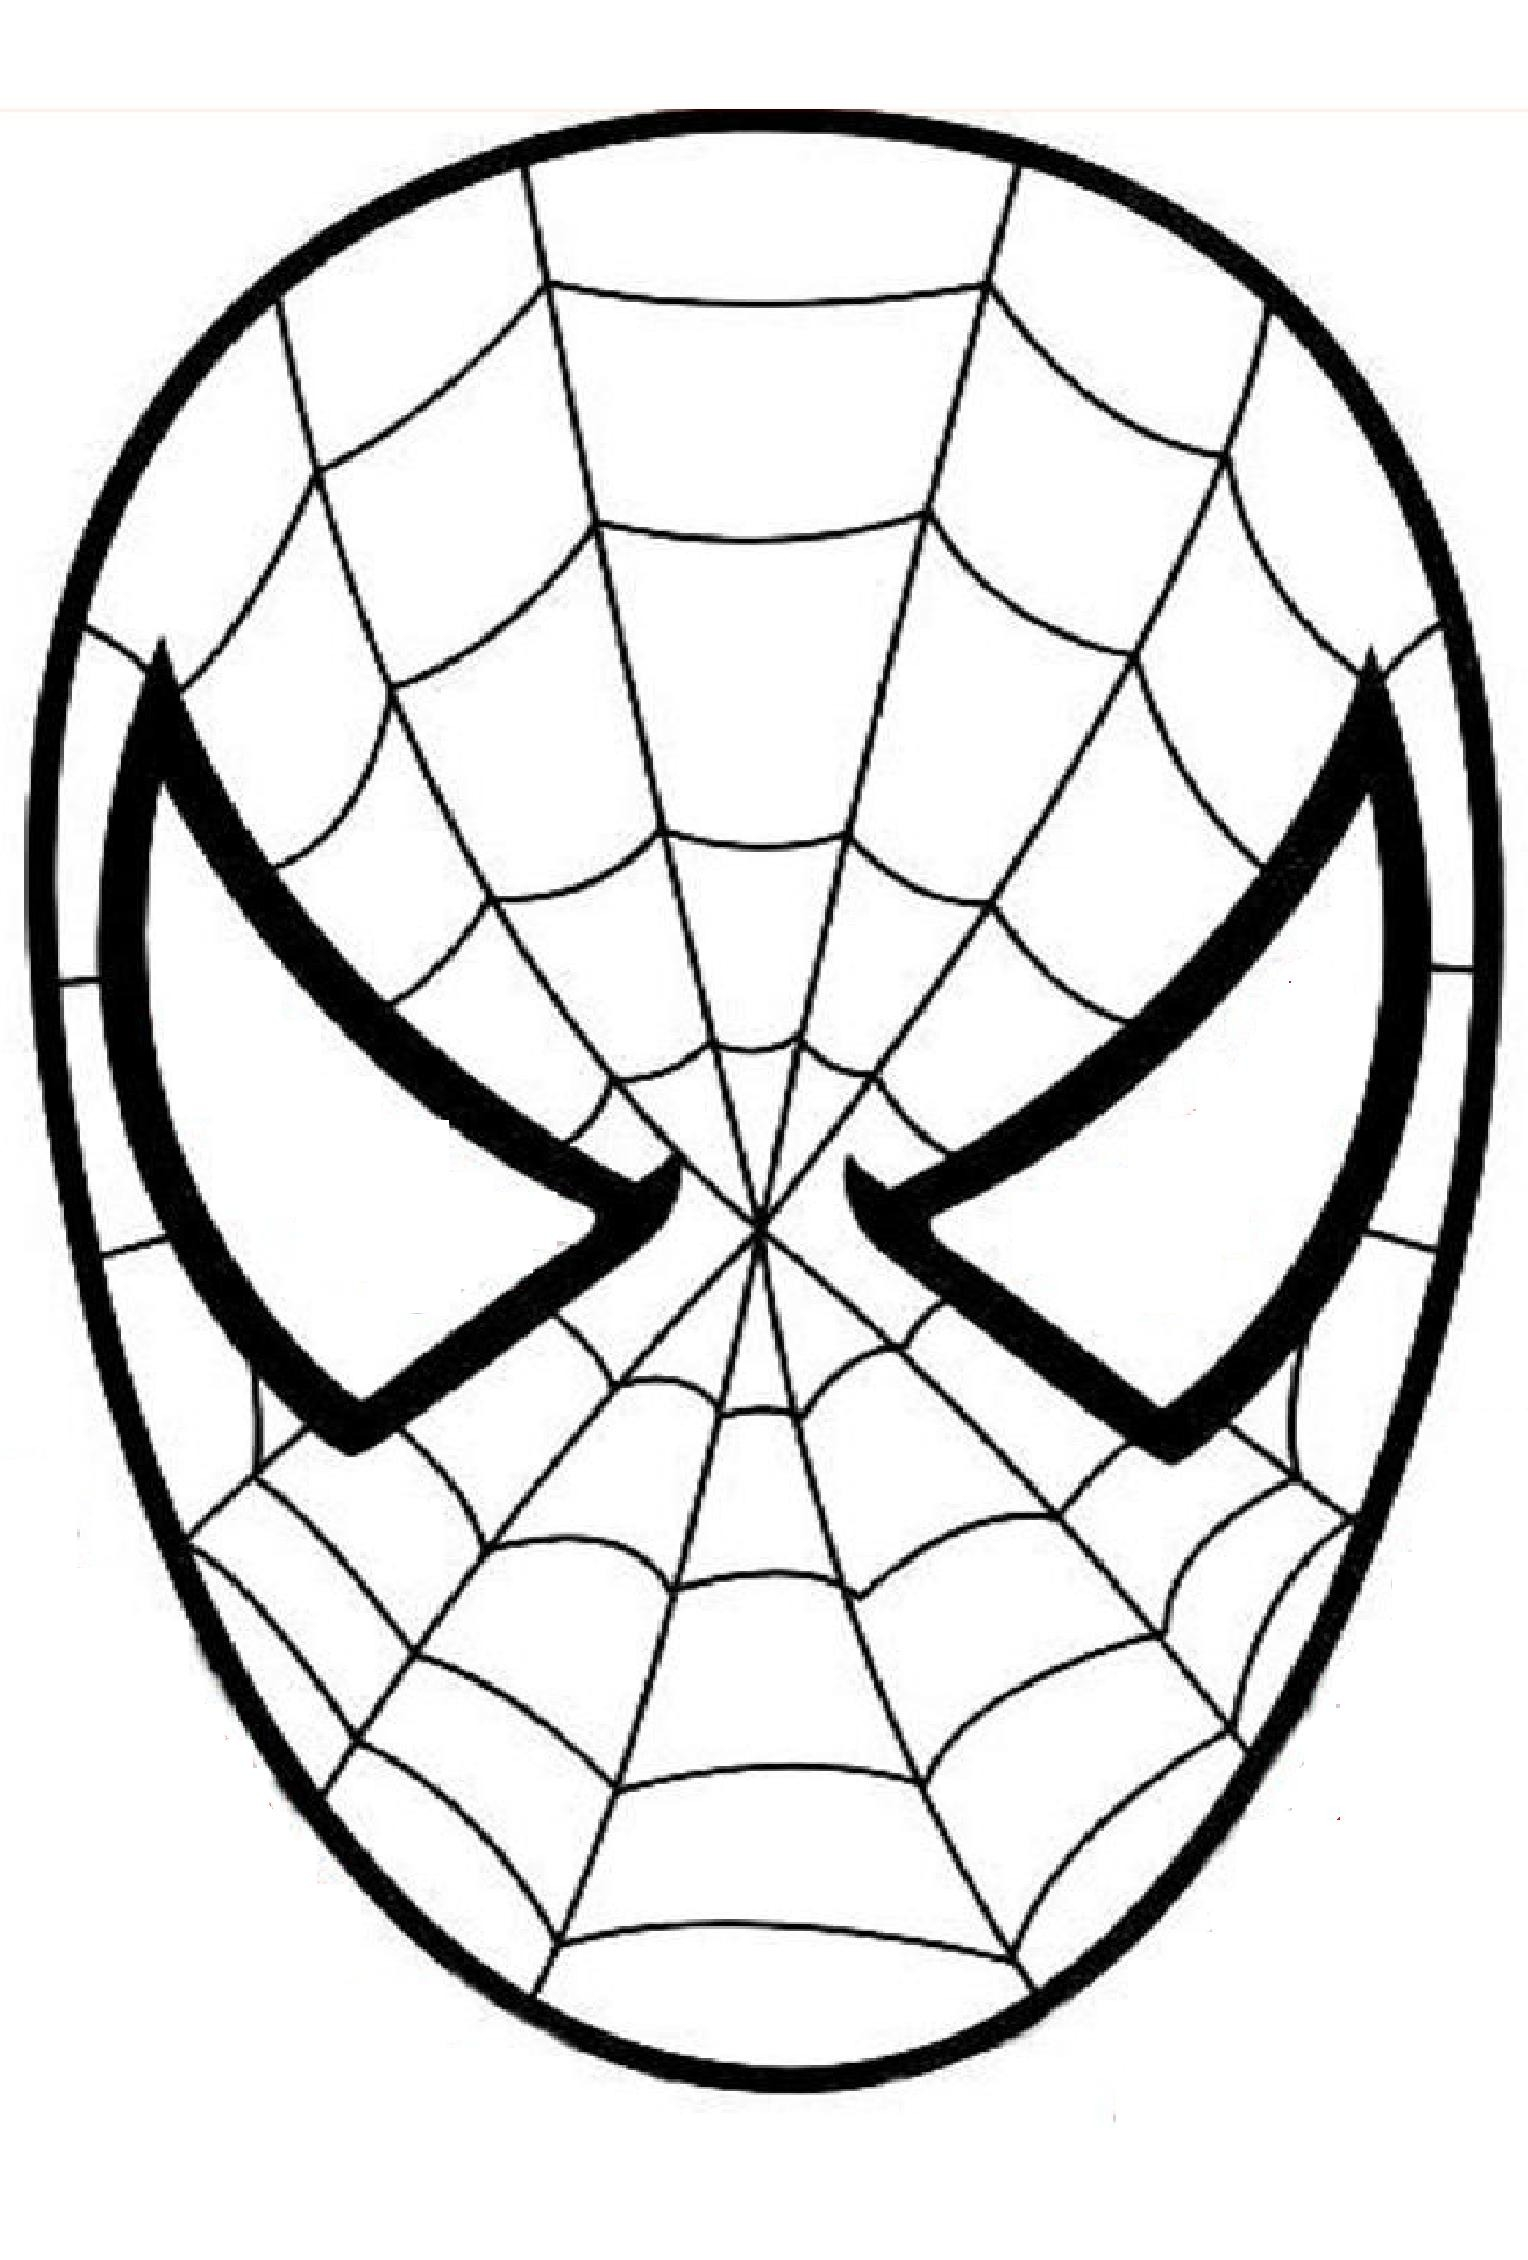 graphic relating to Spiderman Mask Printable identified as Spiderman Mask Drawing Cost-free down load great Spiderman Mask